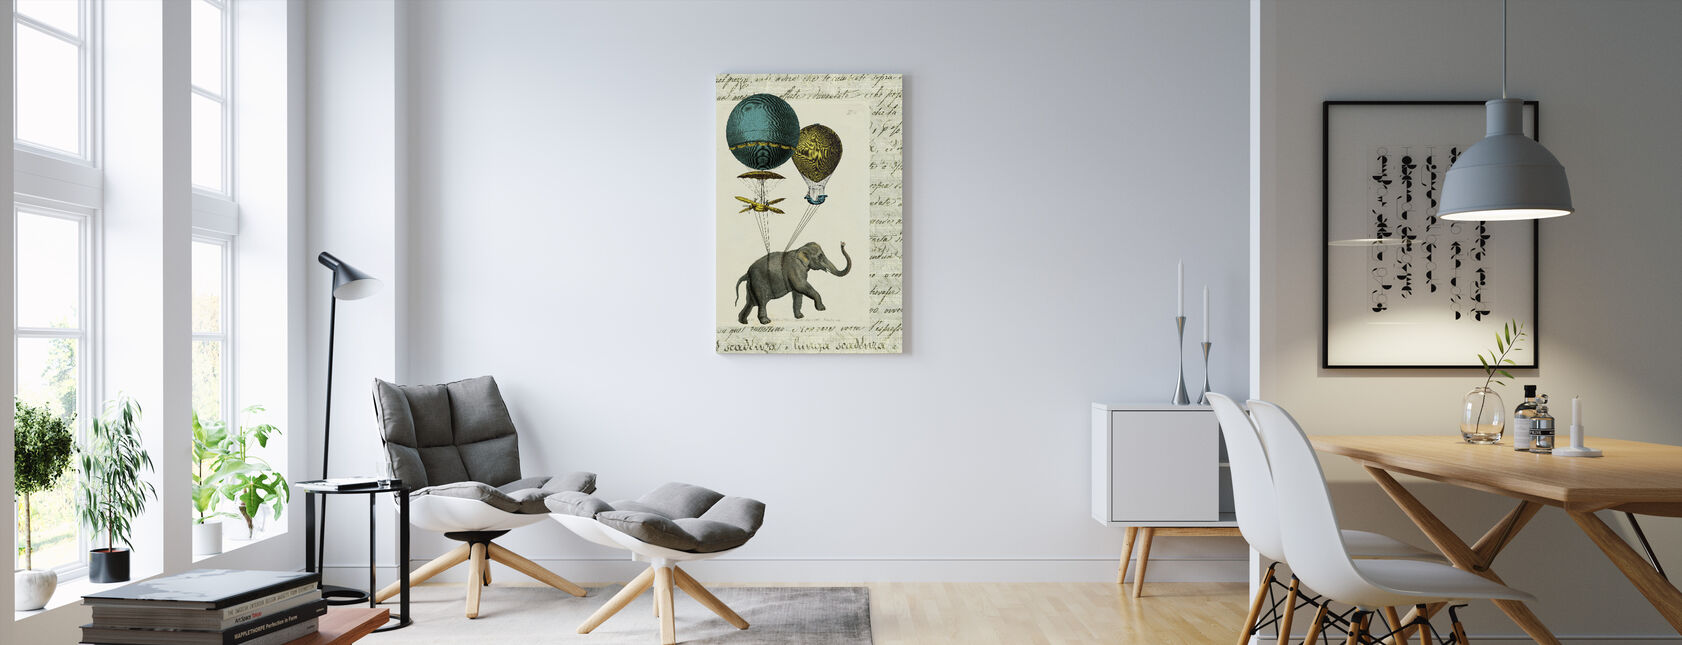 Elephant Ride 2 - Canvas print - Living Room